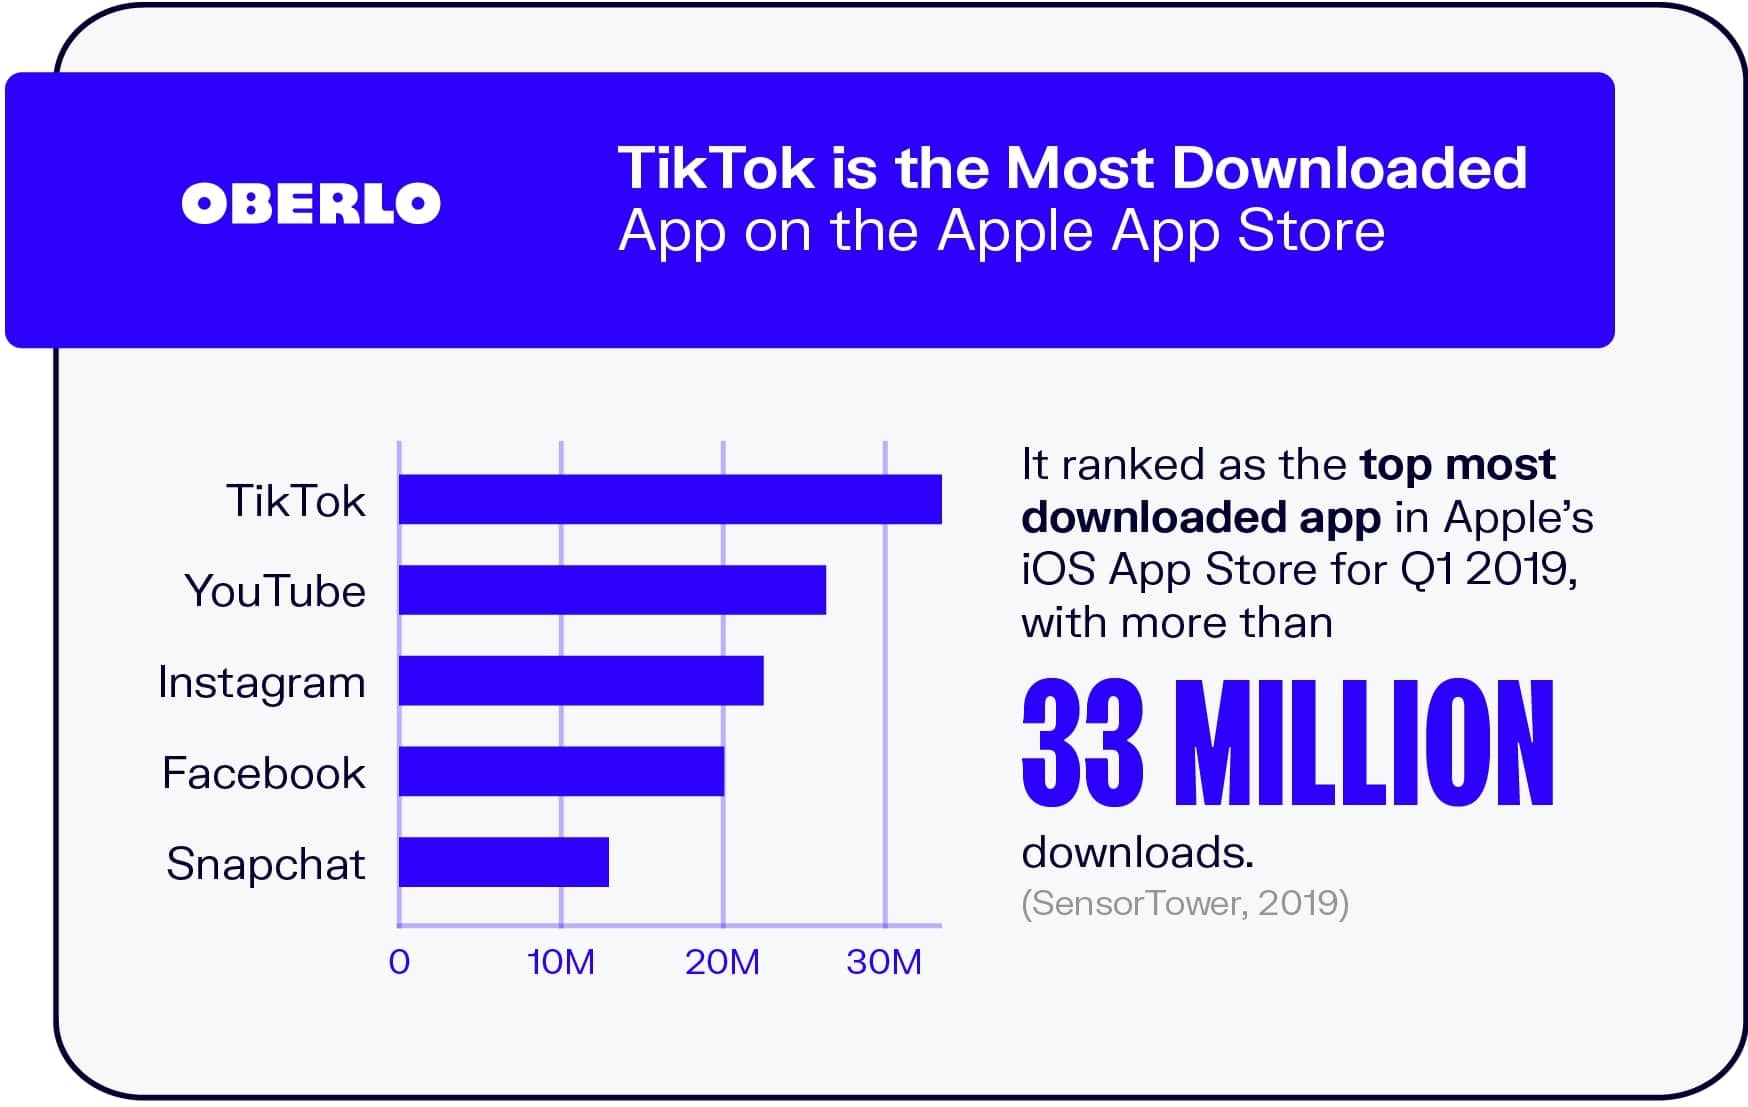 TikTok is the Most Downloaded App on the Apple App Store